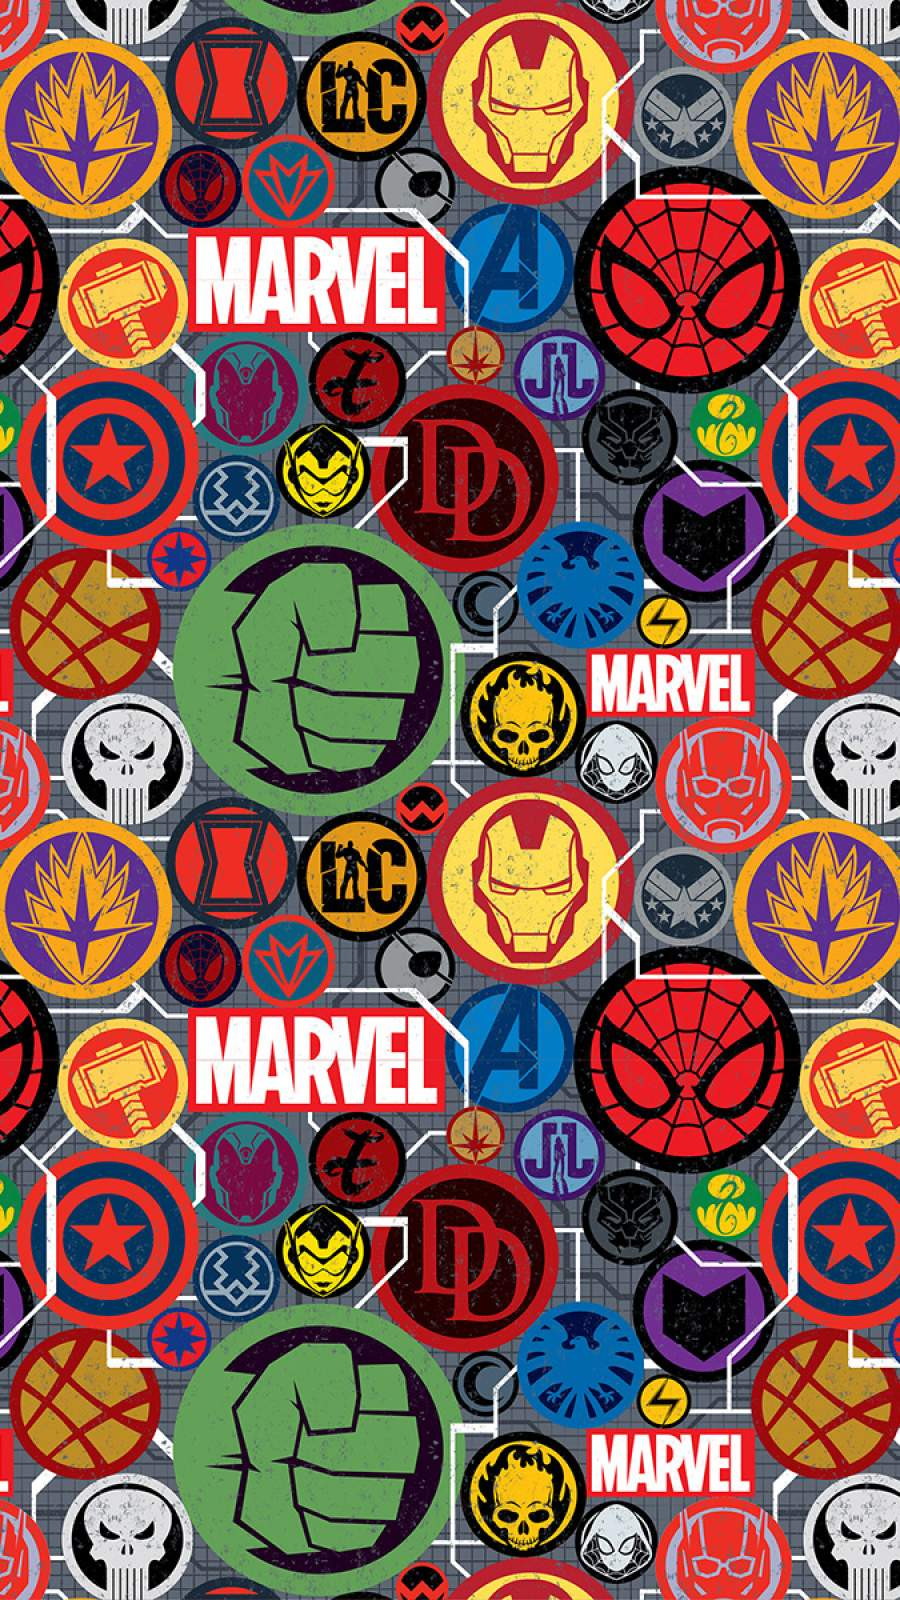 Marvel Superheroes Stickers iPhone Wallpaper